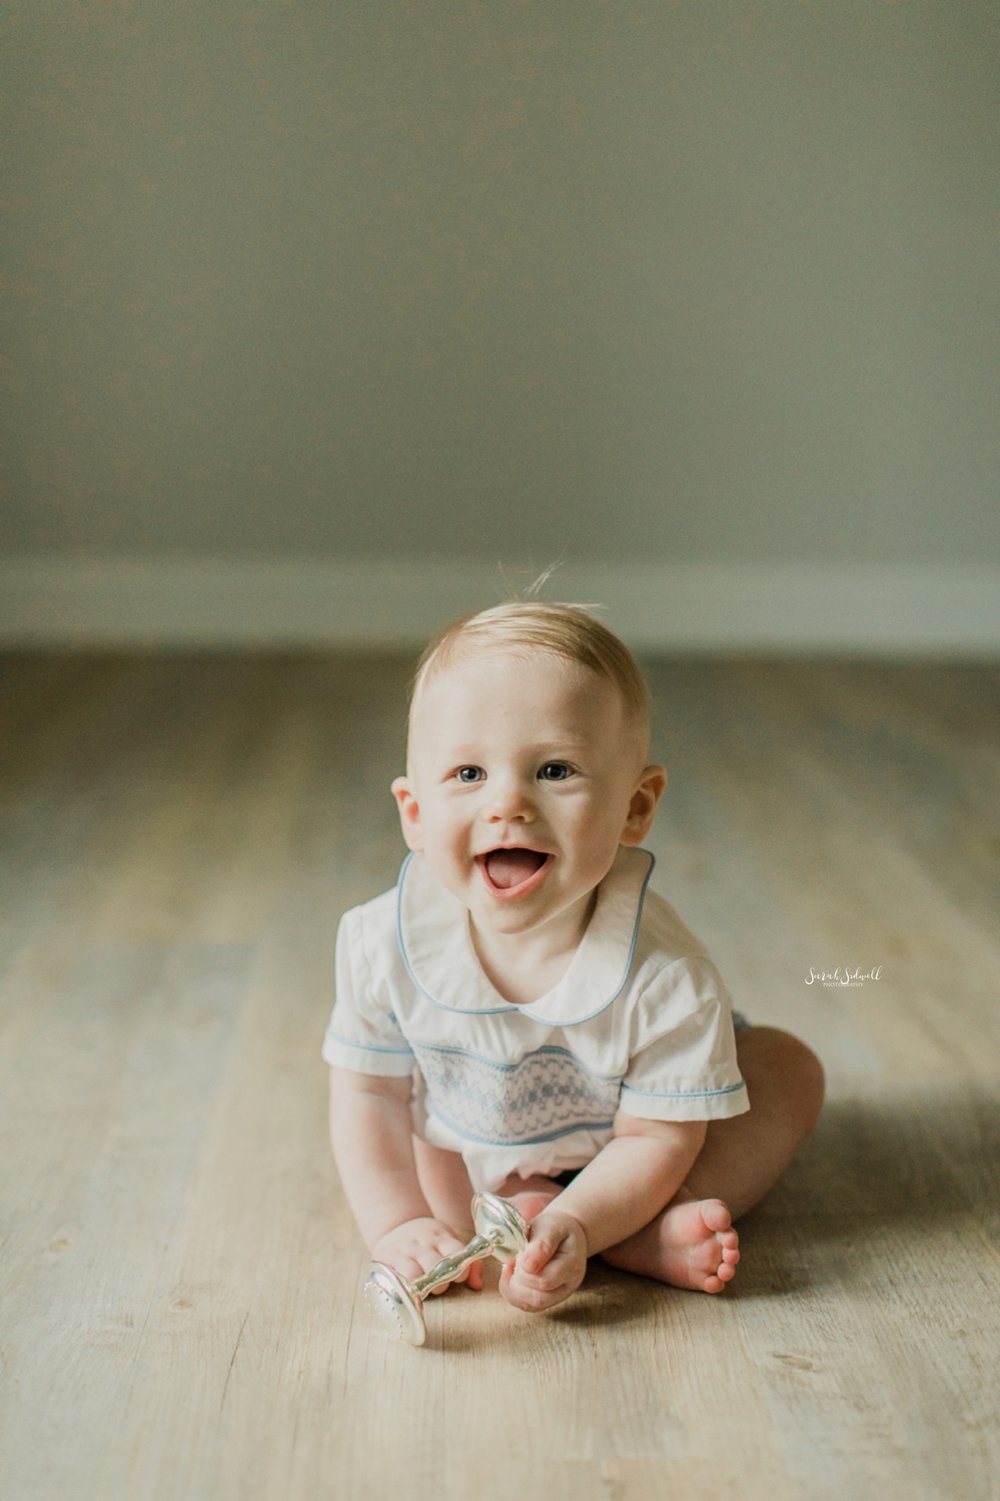 A baby sits up on a wooden floor and smiles.